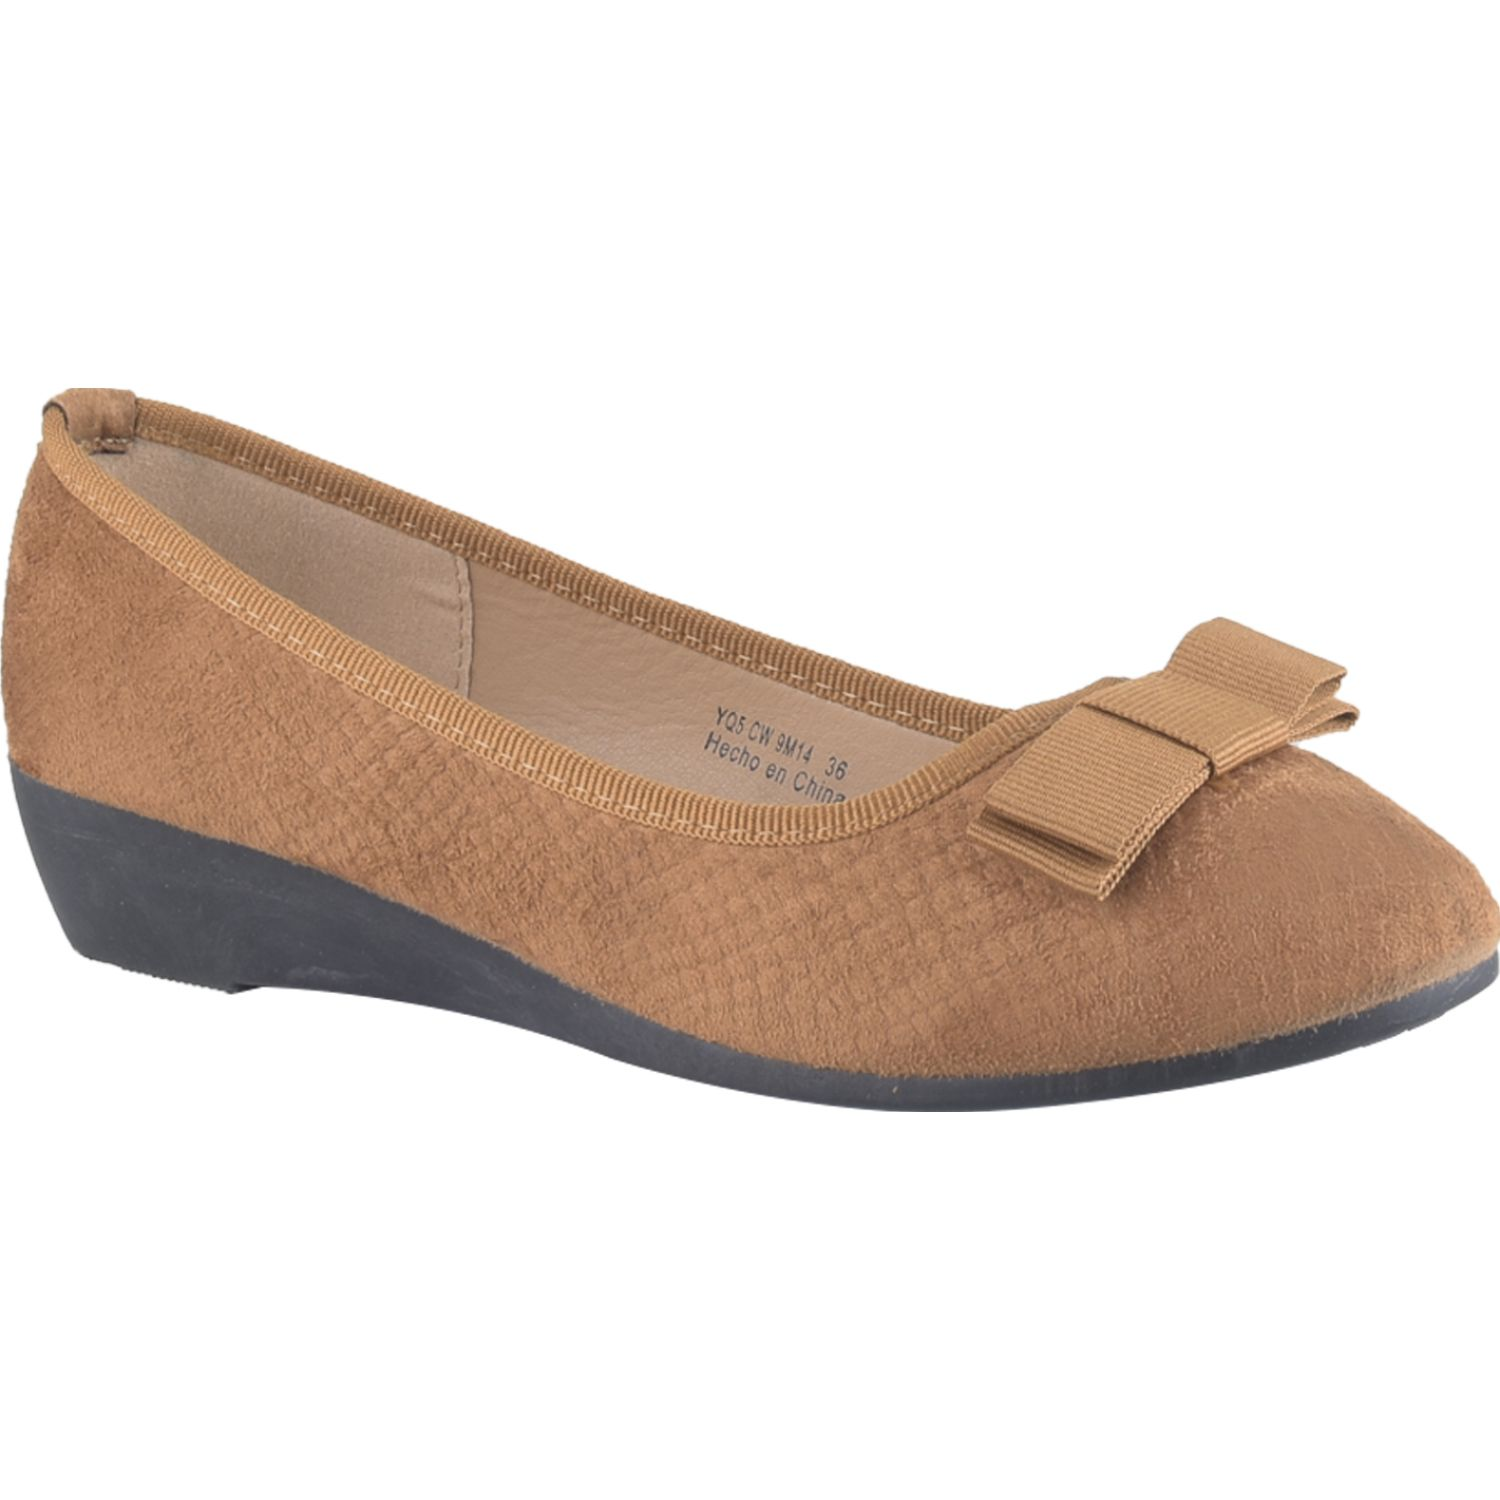 Platanitos CW 9M14 Camel Estiletos y Pumps